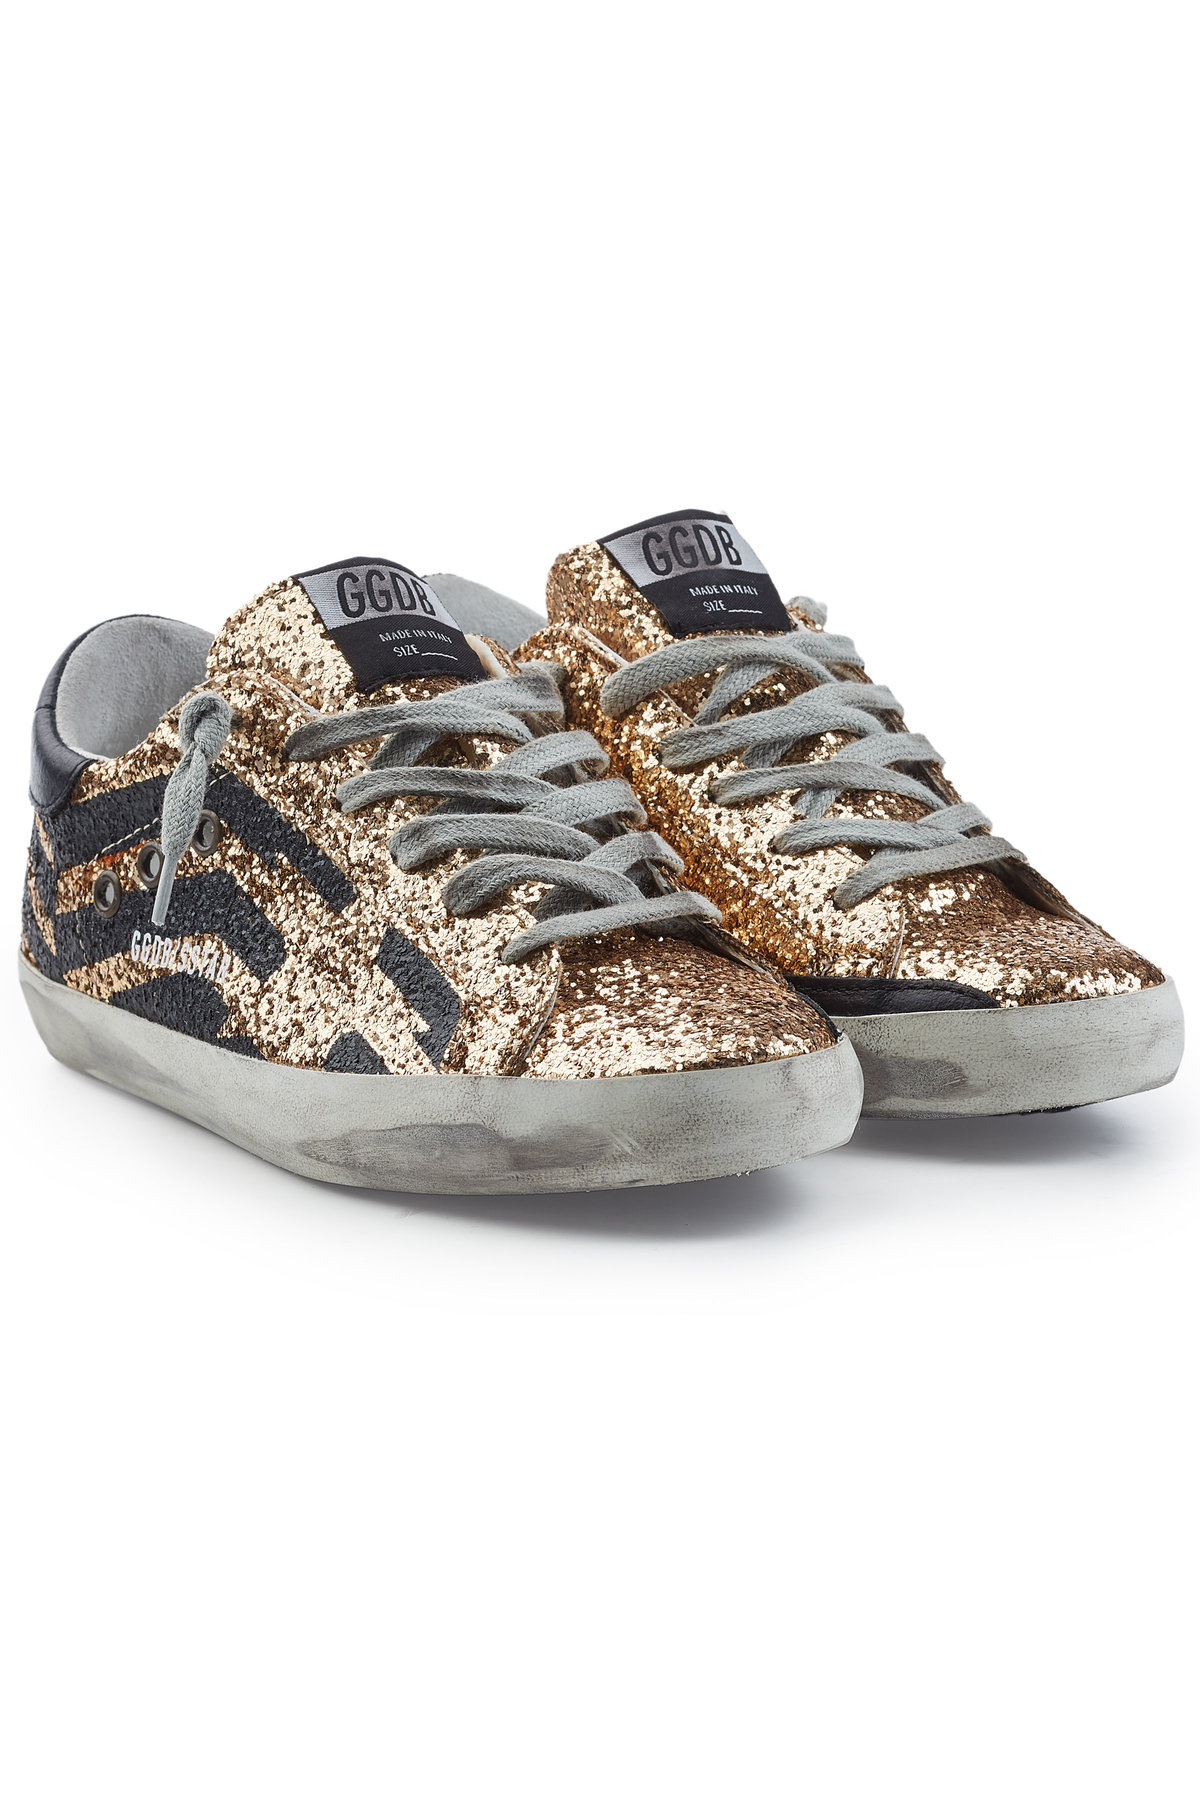 Super Star Leather and Glitter Sneaker | GOLDEN GOOSE DELUXE BRAND